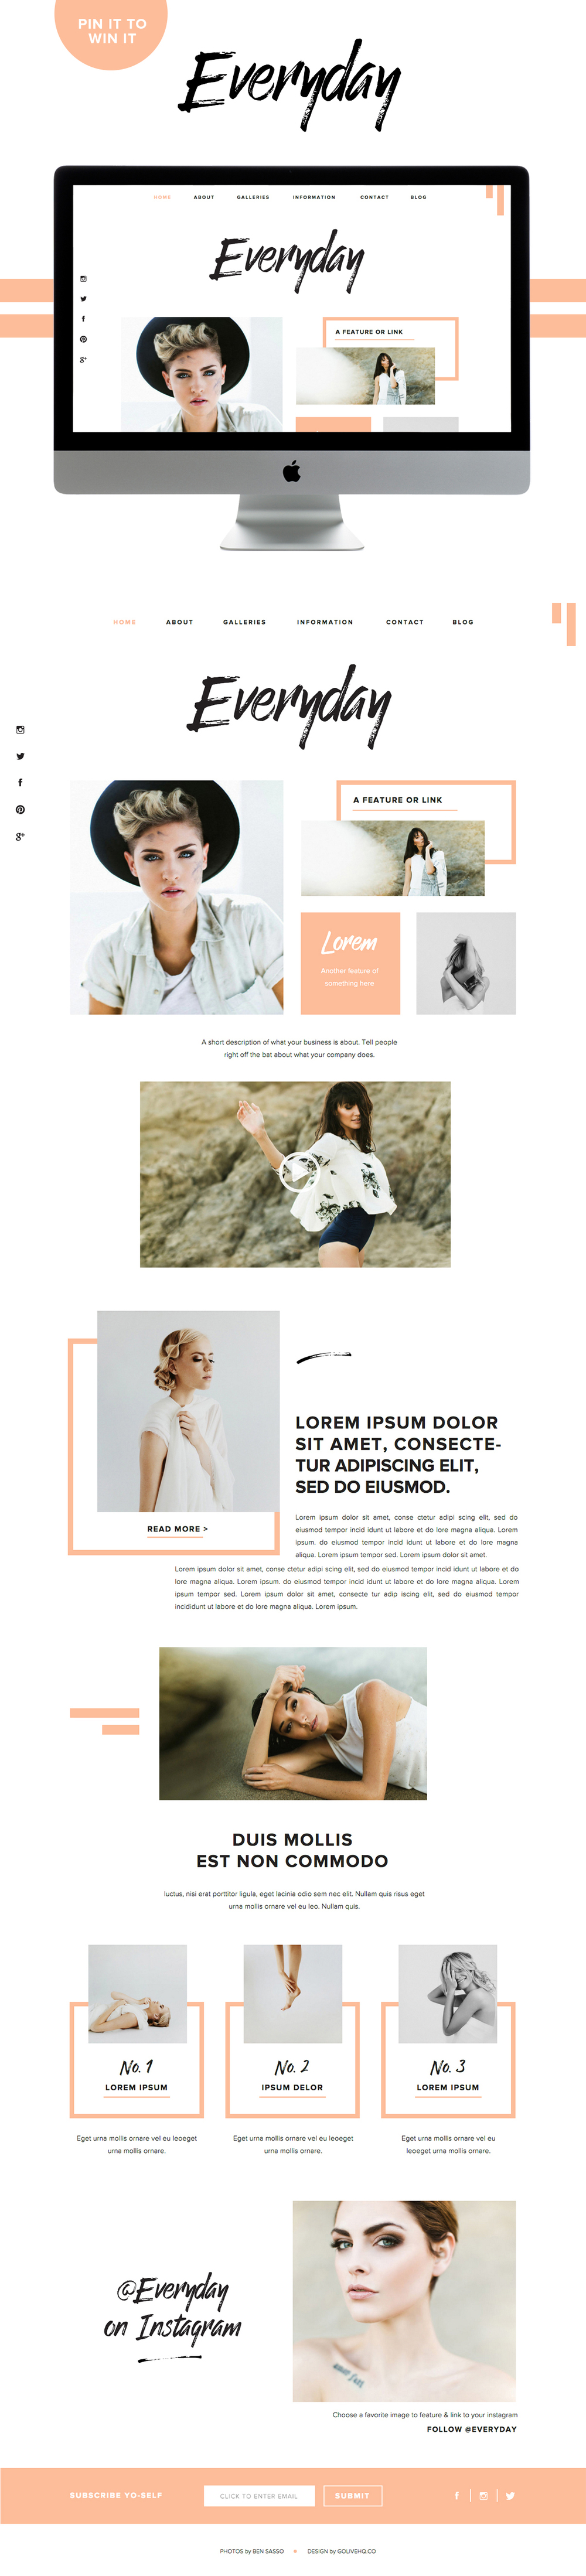 modern website showit5 inspiration  |  BY GOLIVEHQ.CO